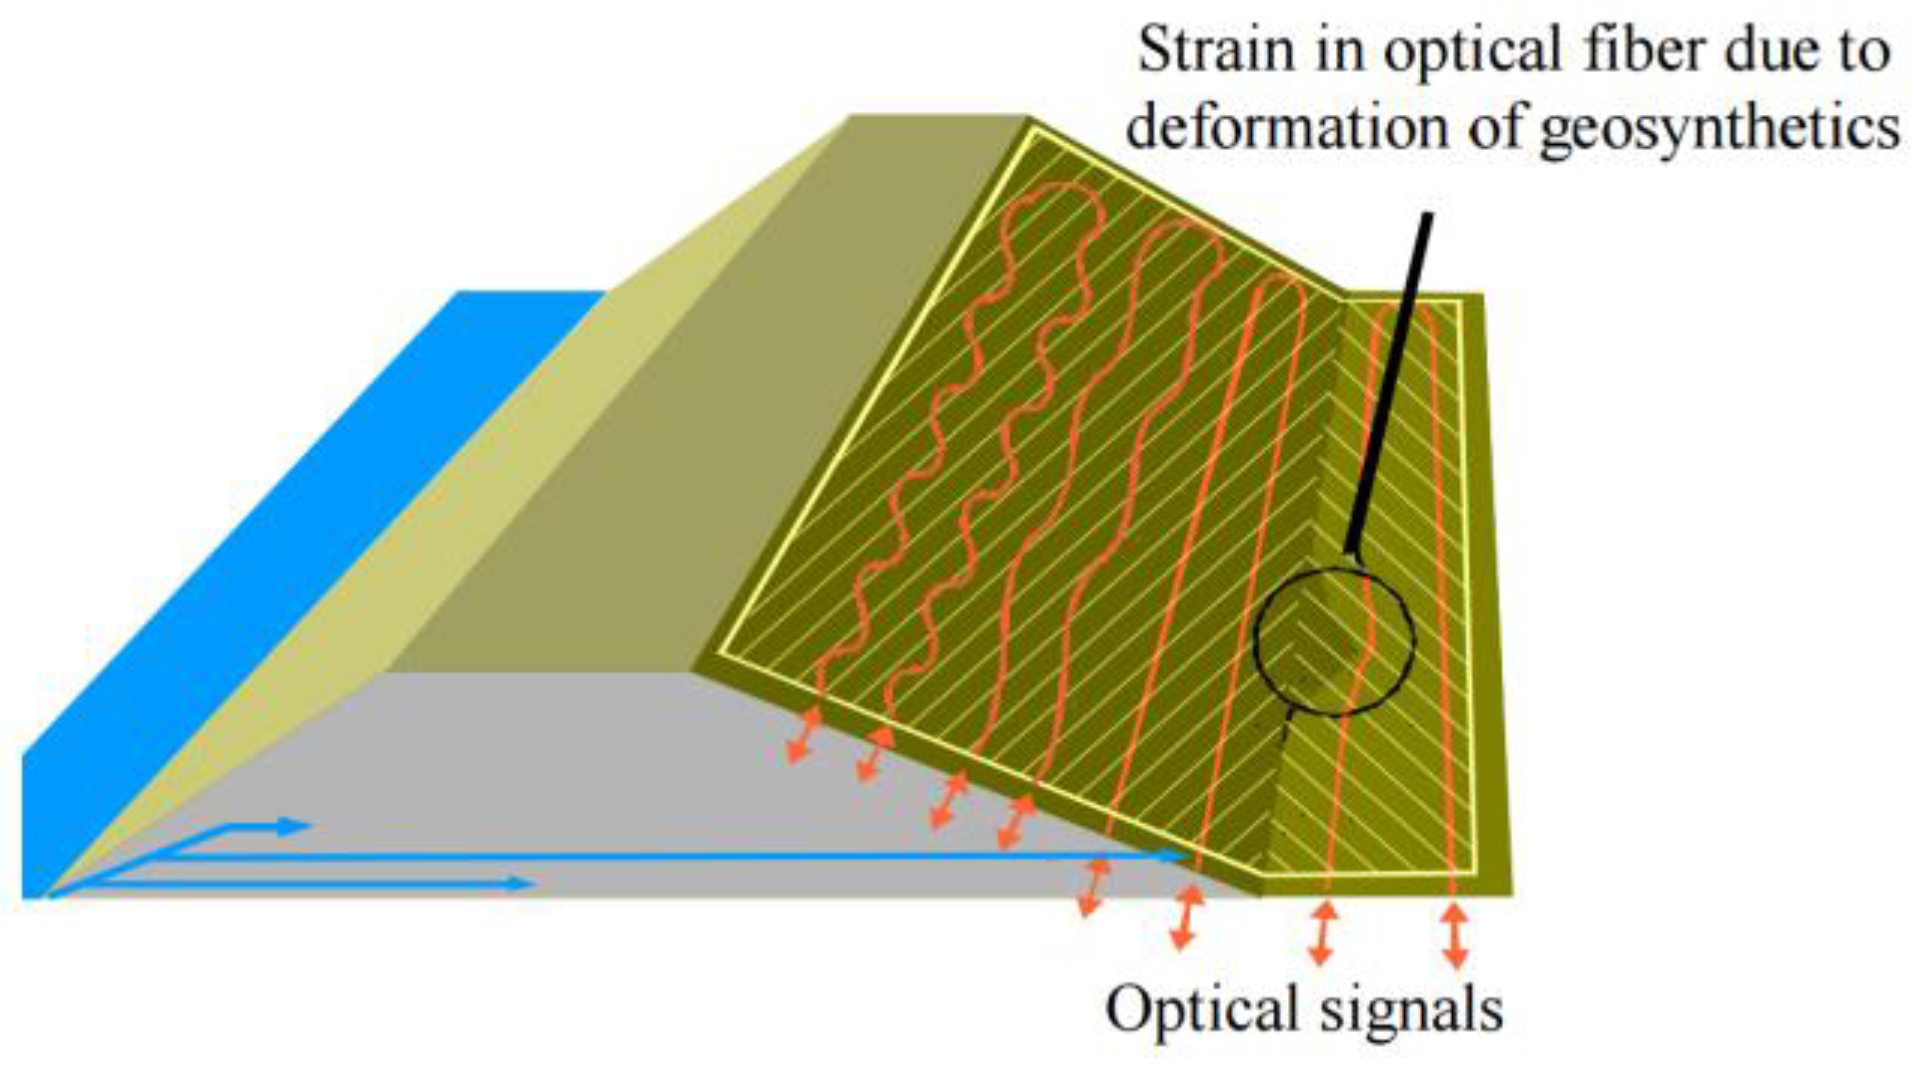 Sensors Free Full Text A Review Of Distributed Optical Fiber Optics Diagram Optic Technology And Its Role In The 16 00748 G027 1024